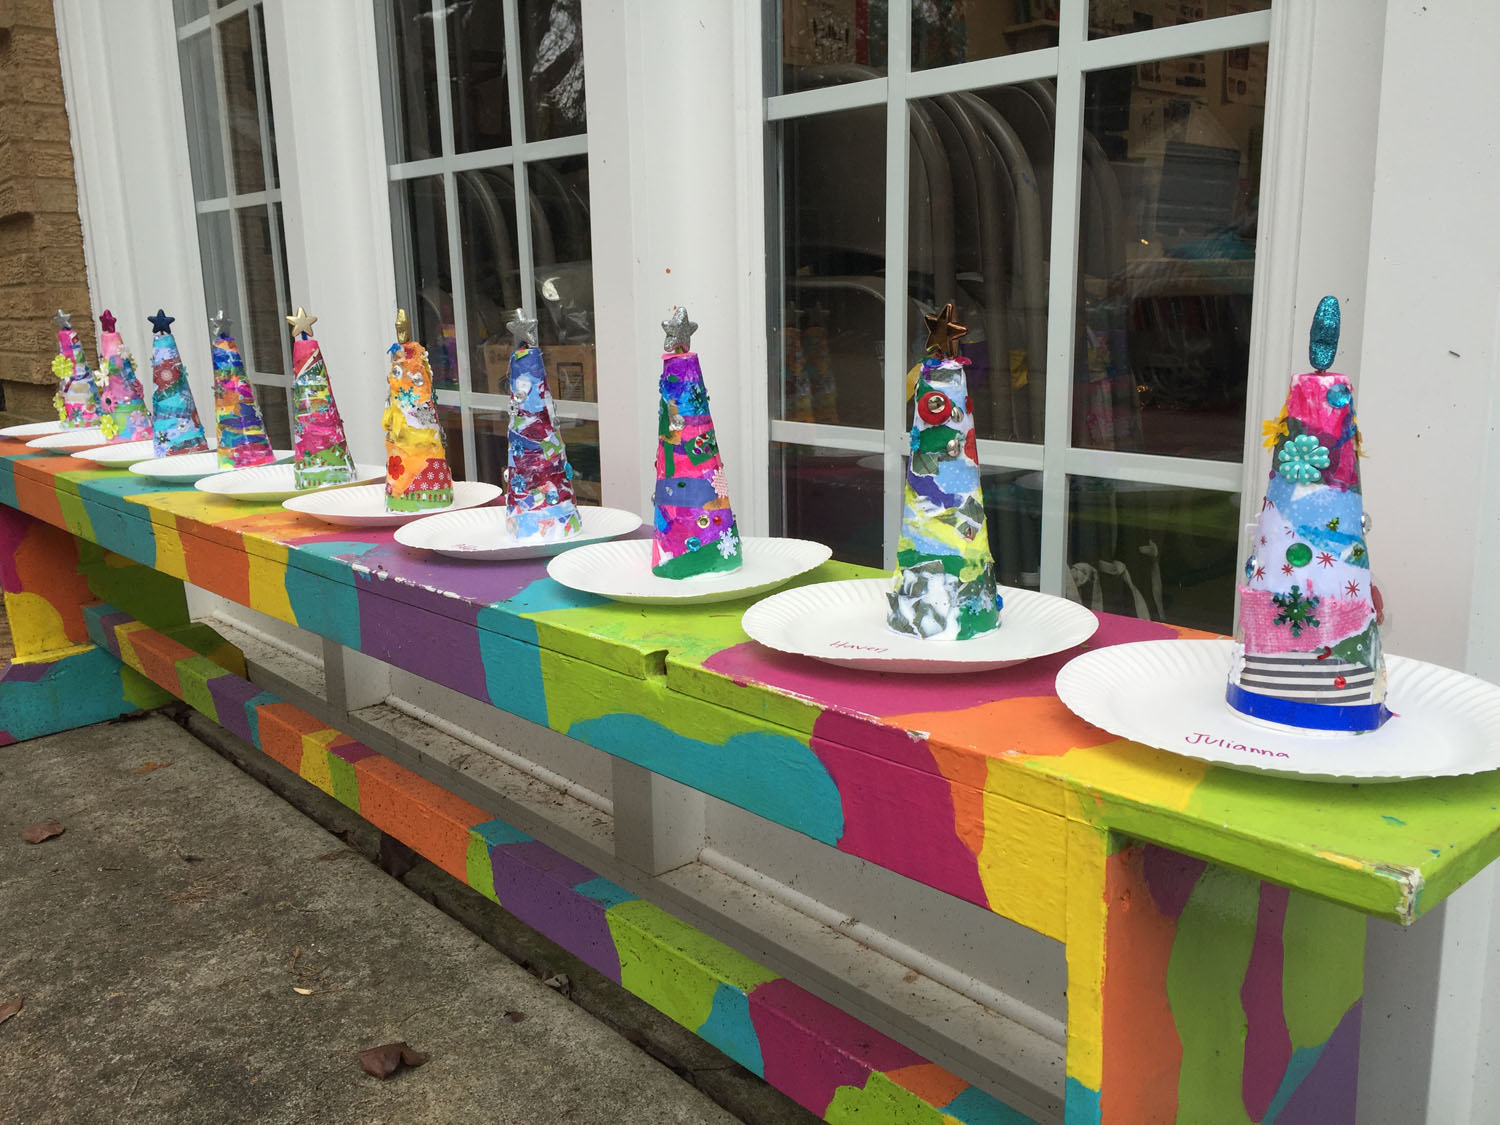 creative-art-projects-for-kids-classes-and-camps-in-greensboro-nc-IMG_2222.jpg